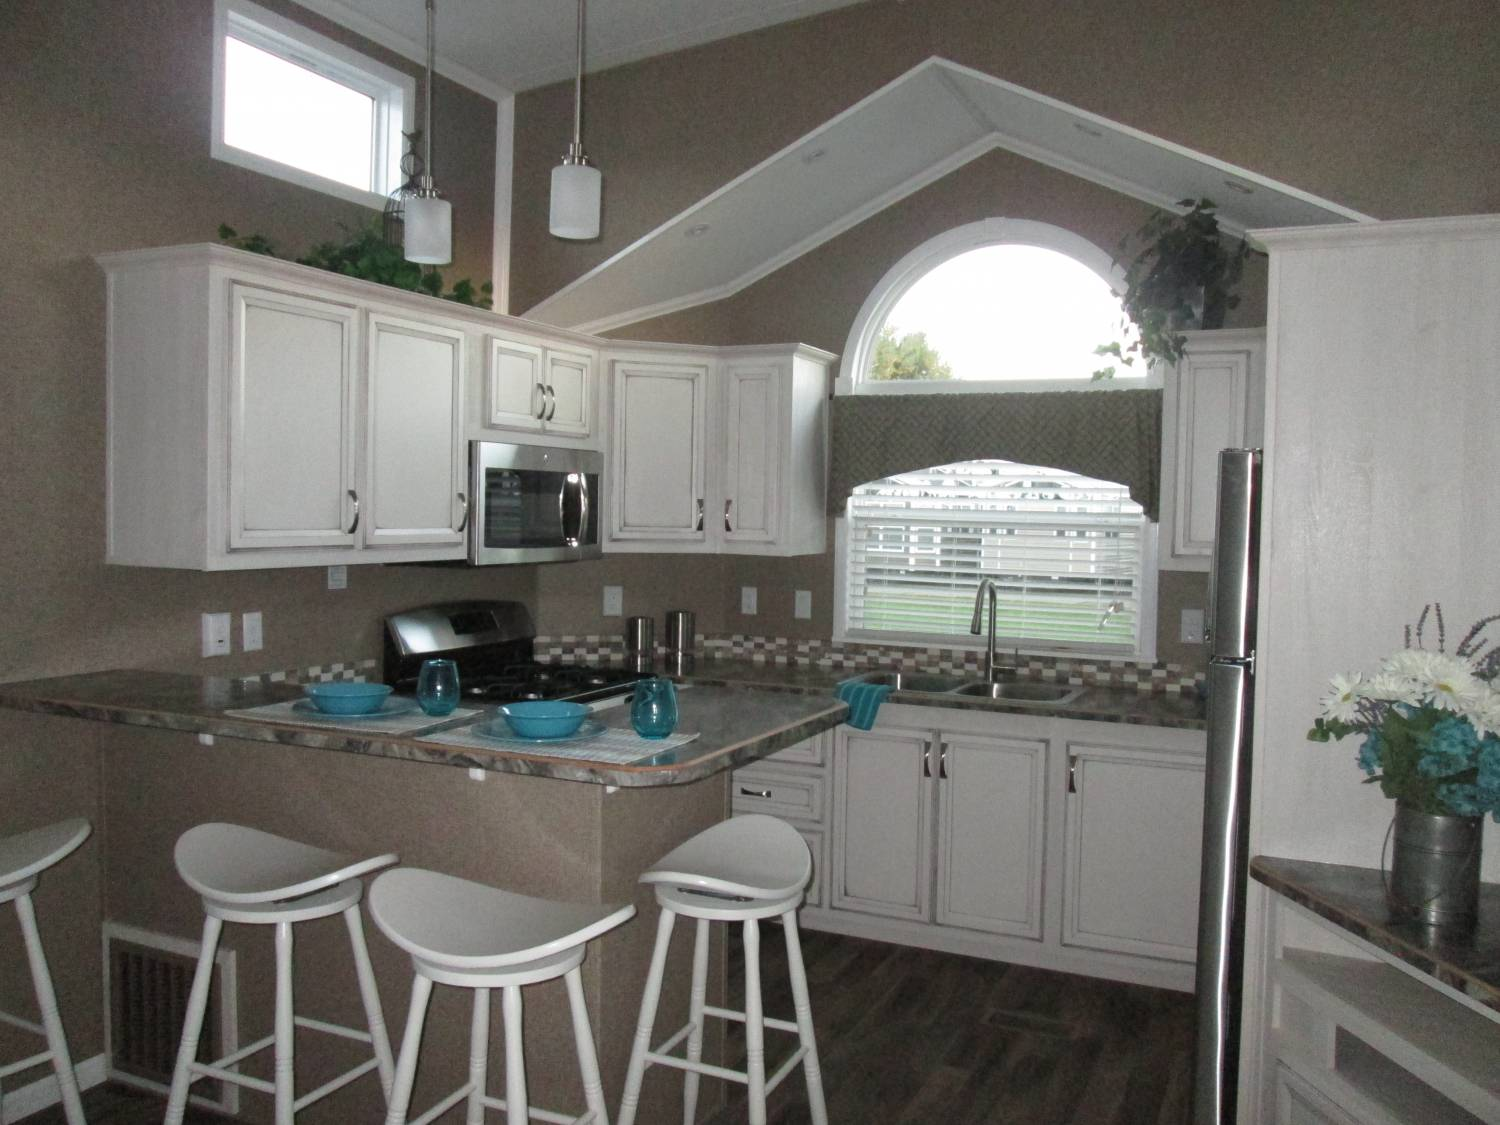 2017 Kropf Front Kitchen | Vacationland Sales on Model Kitchen Picture  id=97065